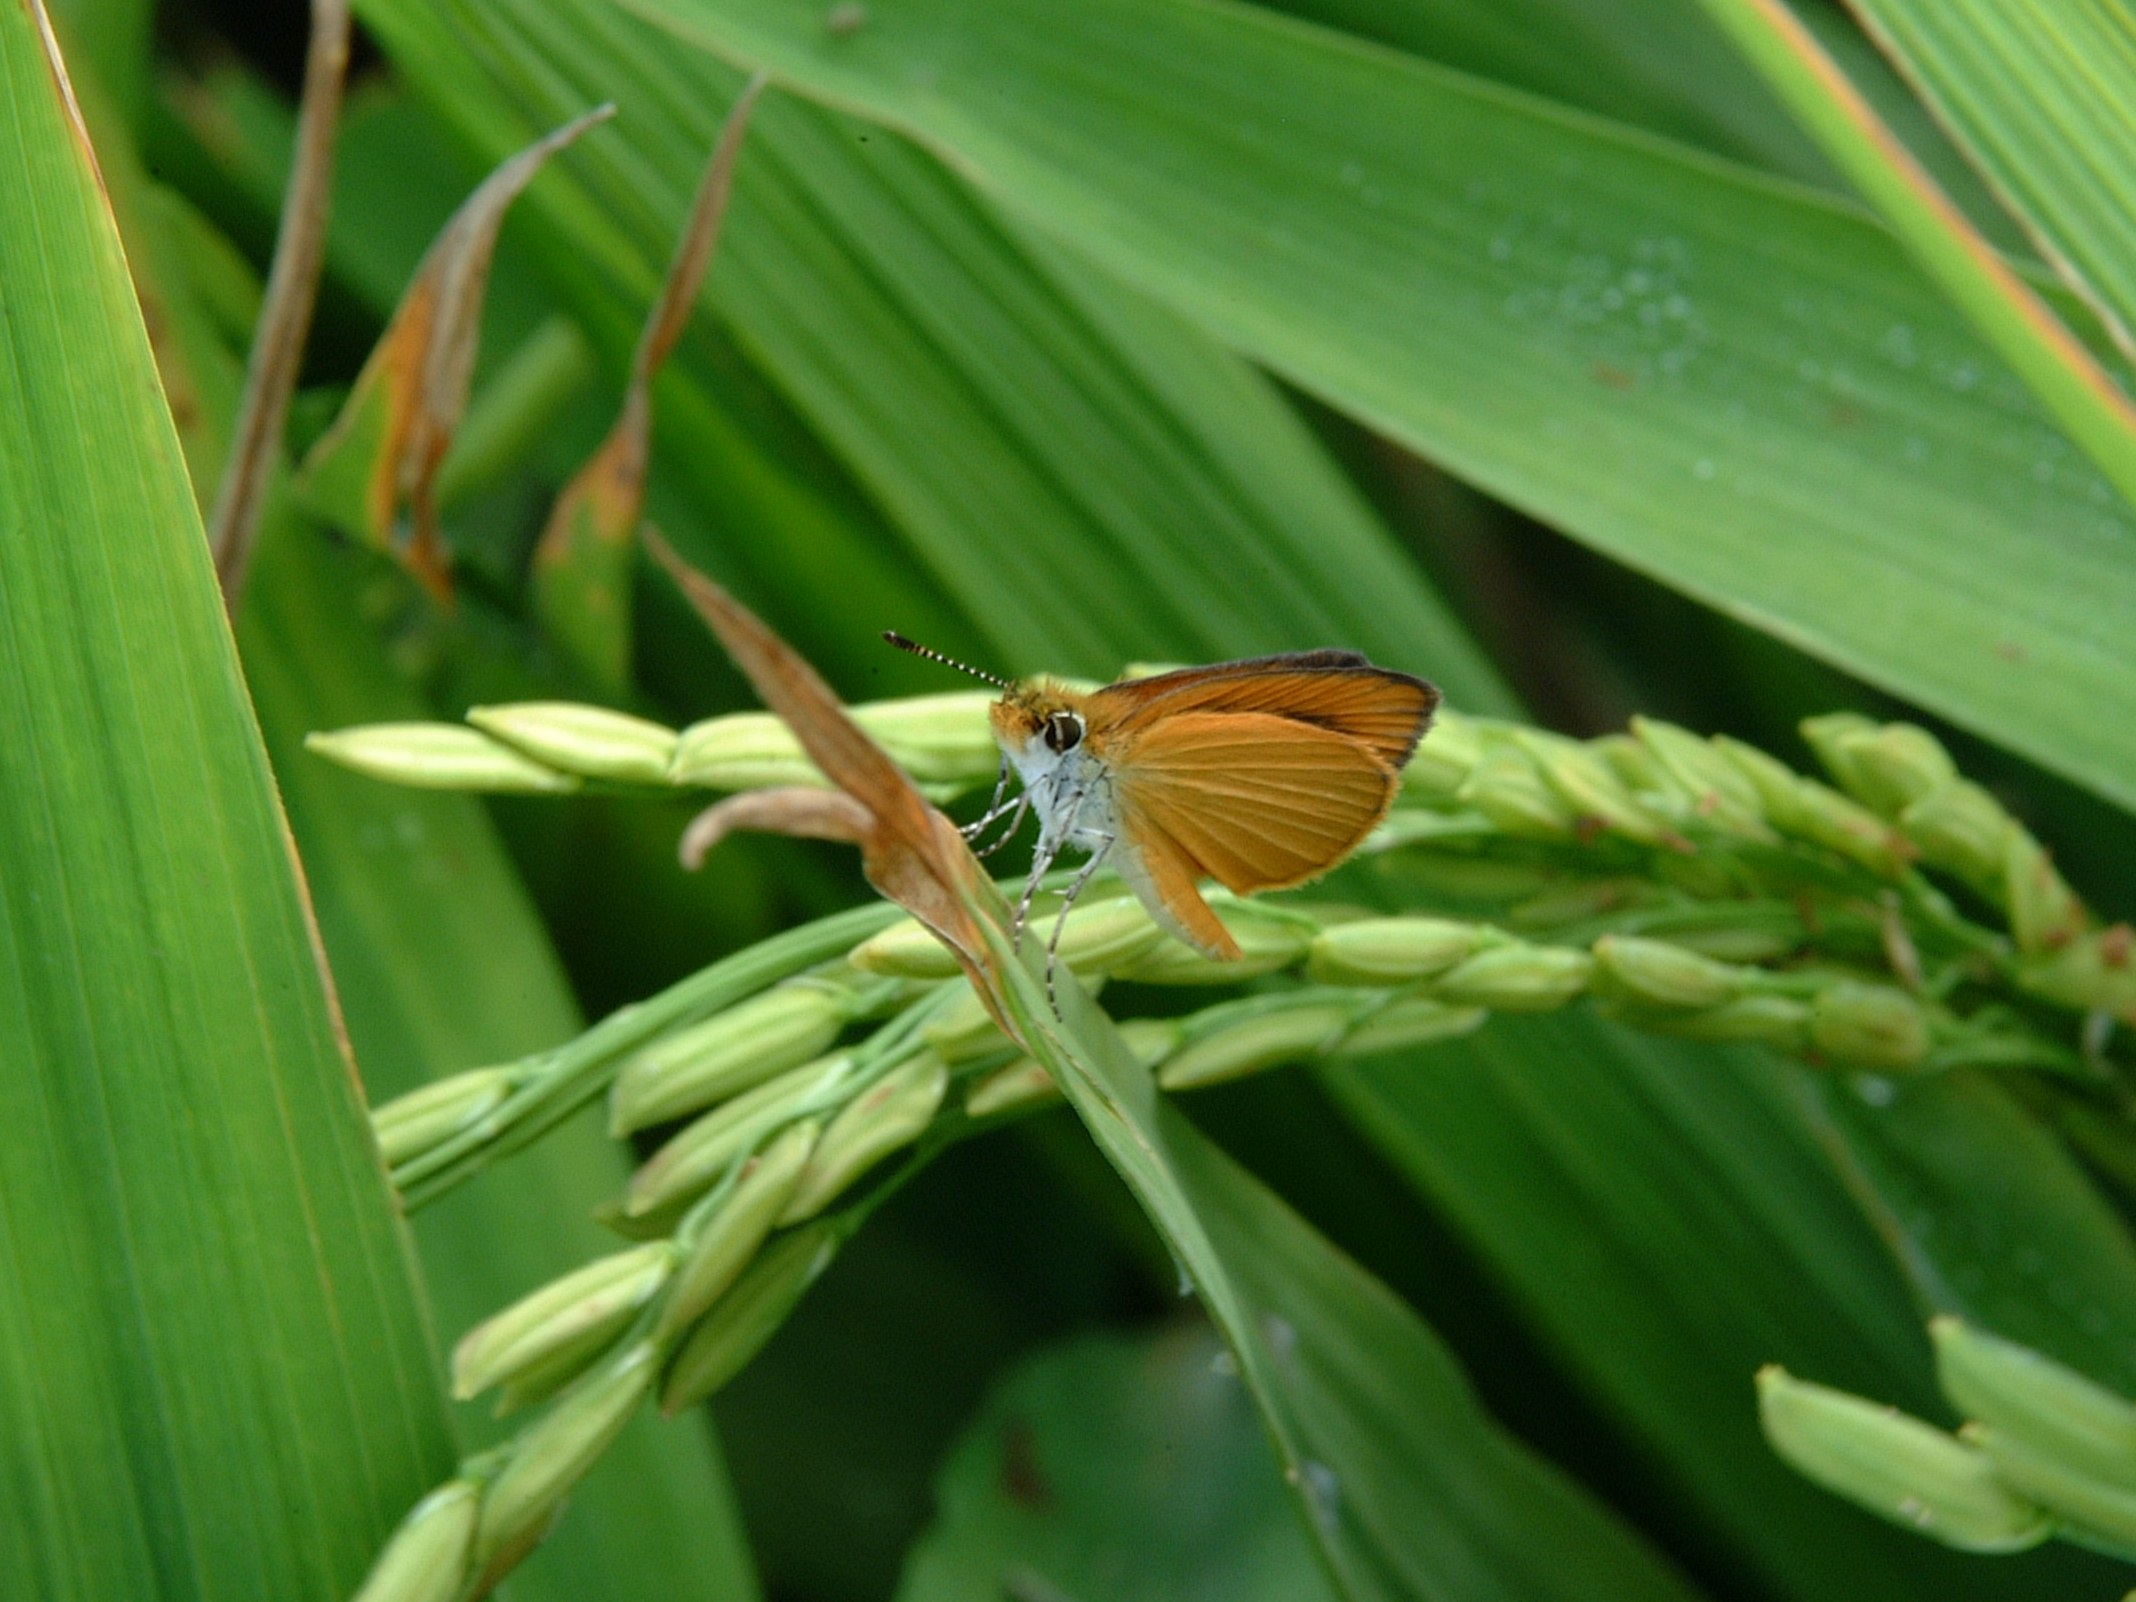 Skipper adult on a rice plant.